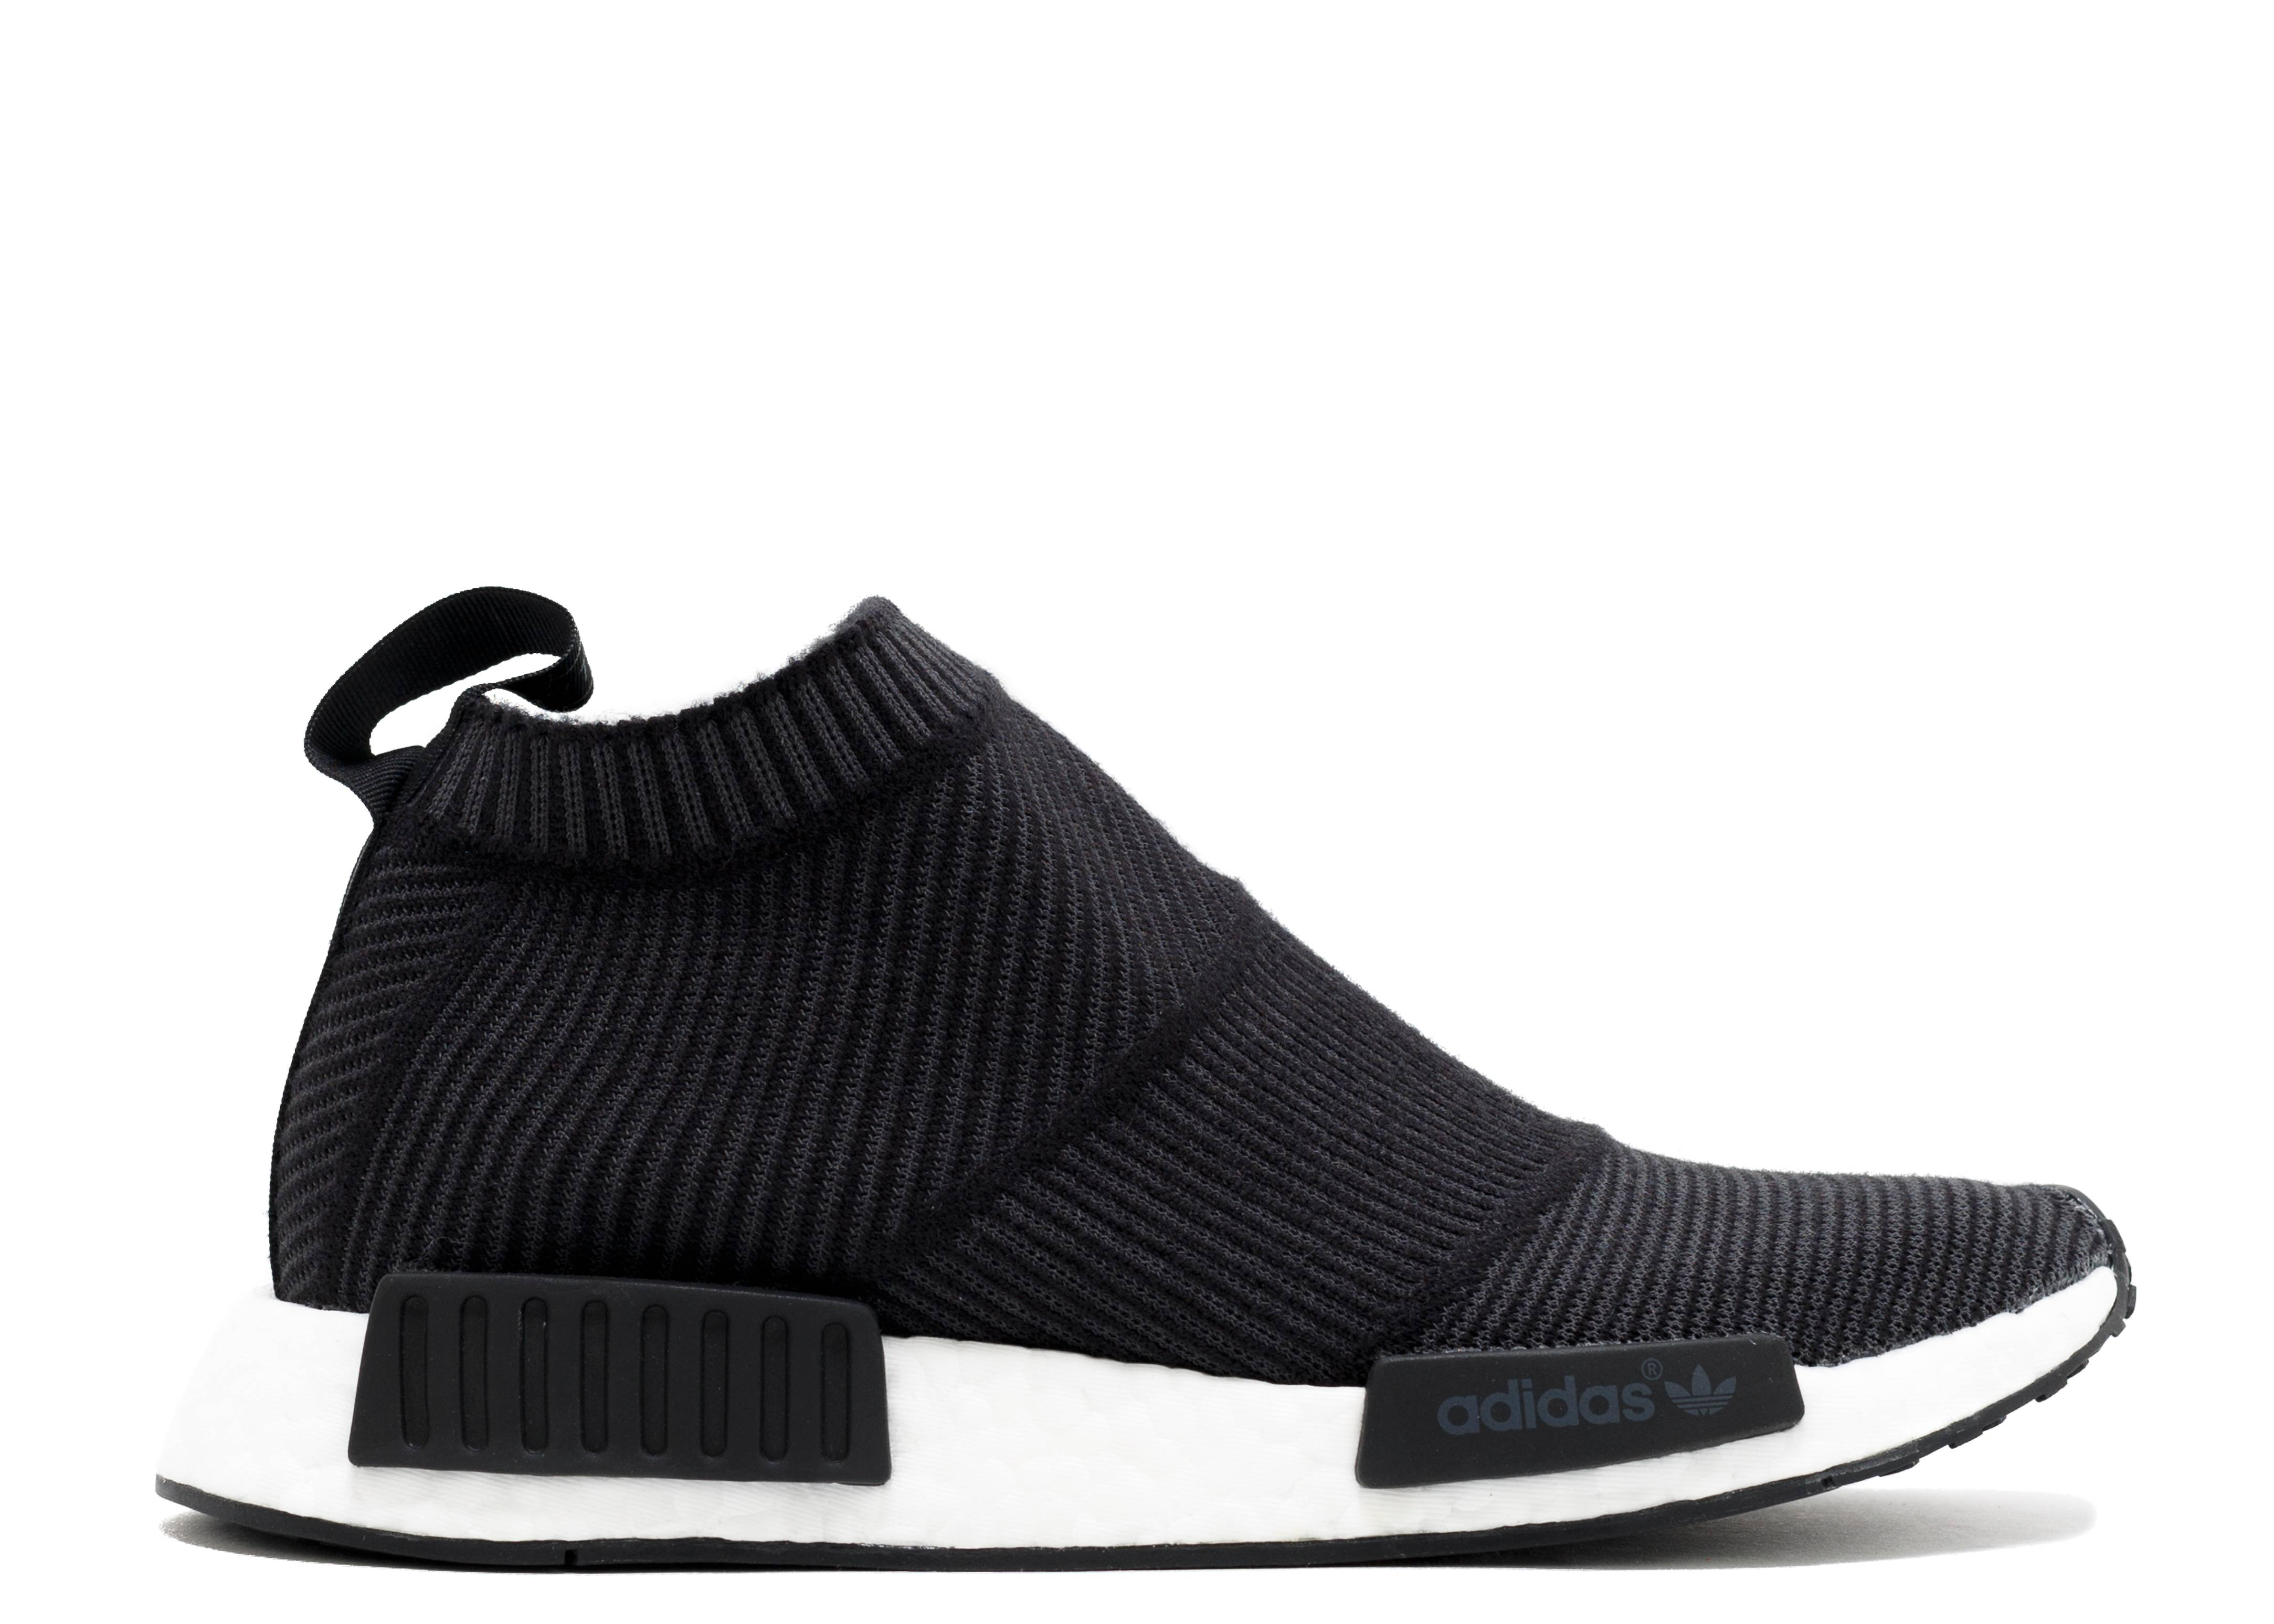 nmd cs1 pk winter wool adidas s32184 core black. Black Bedroom Furniture Sets. Home Design Ideas